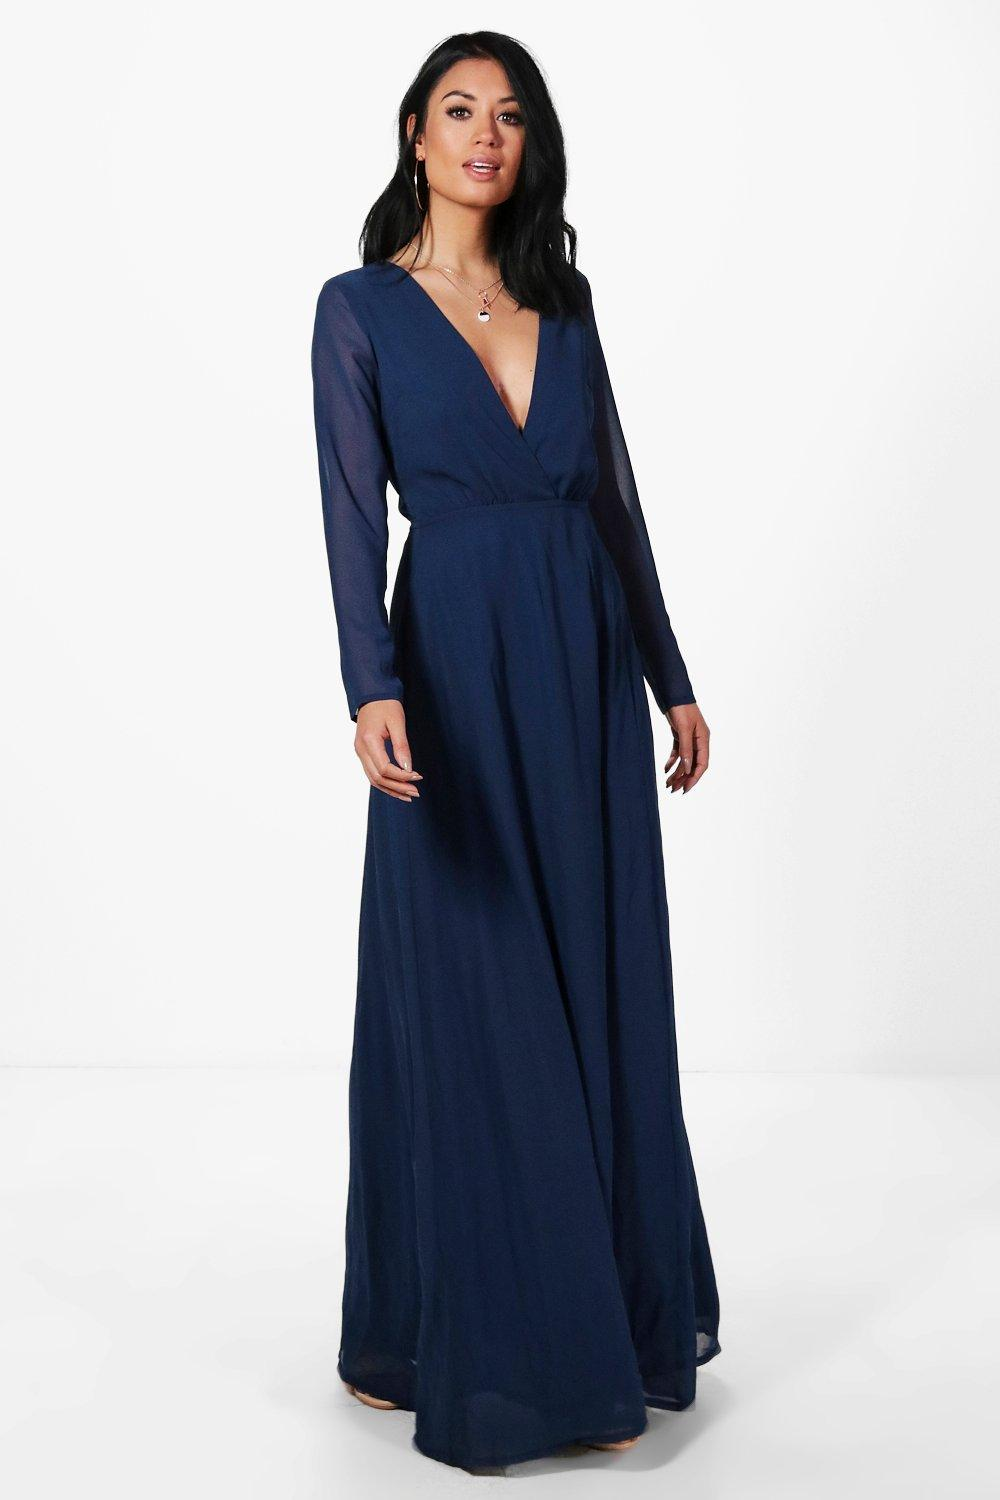 About product and suppliers: autoebookj1.ga offers 46, long sleeve maxi dress products. About 51% of these are casual dresses, 37% are plus size dress & skirts, and 22% are girls' dresses.